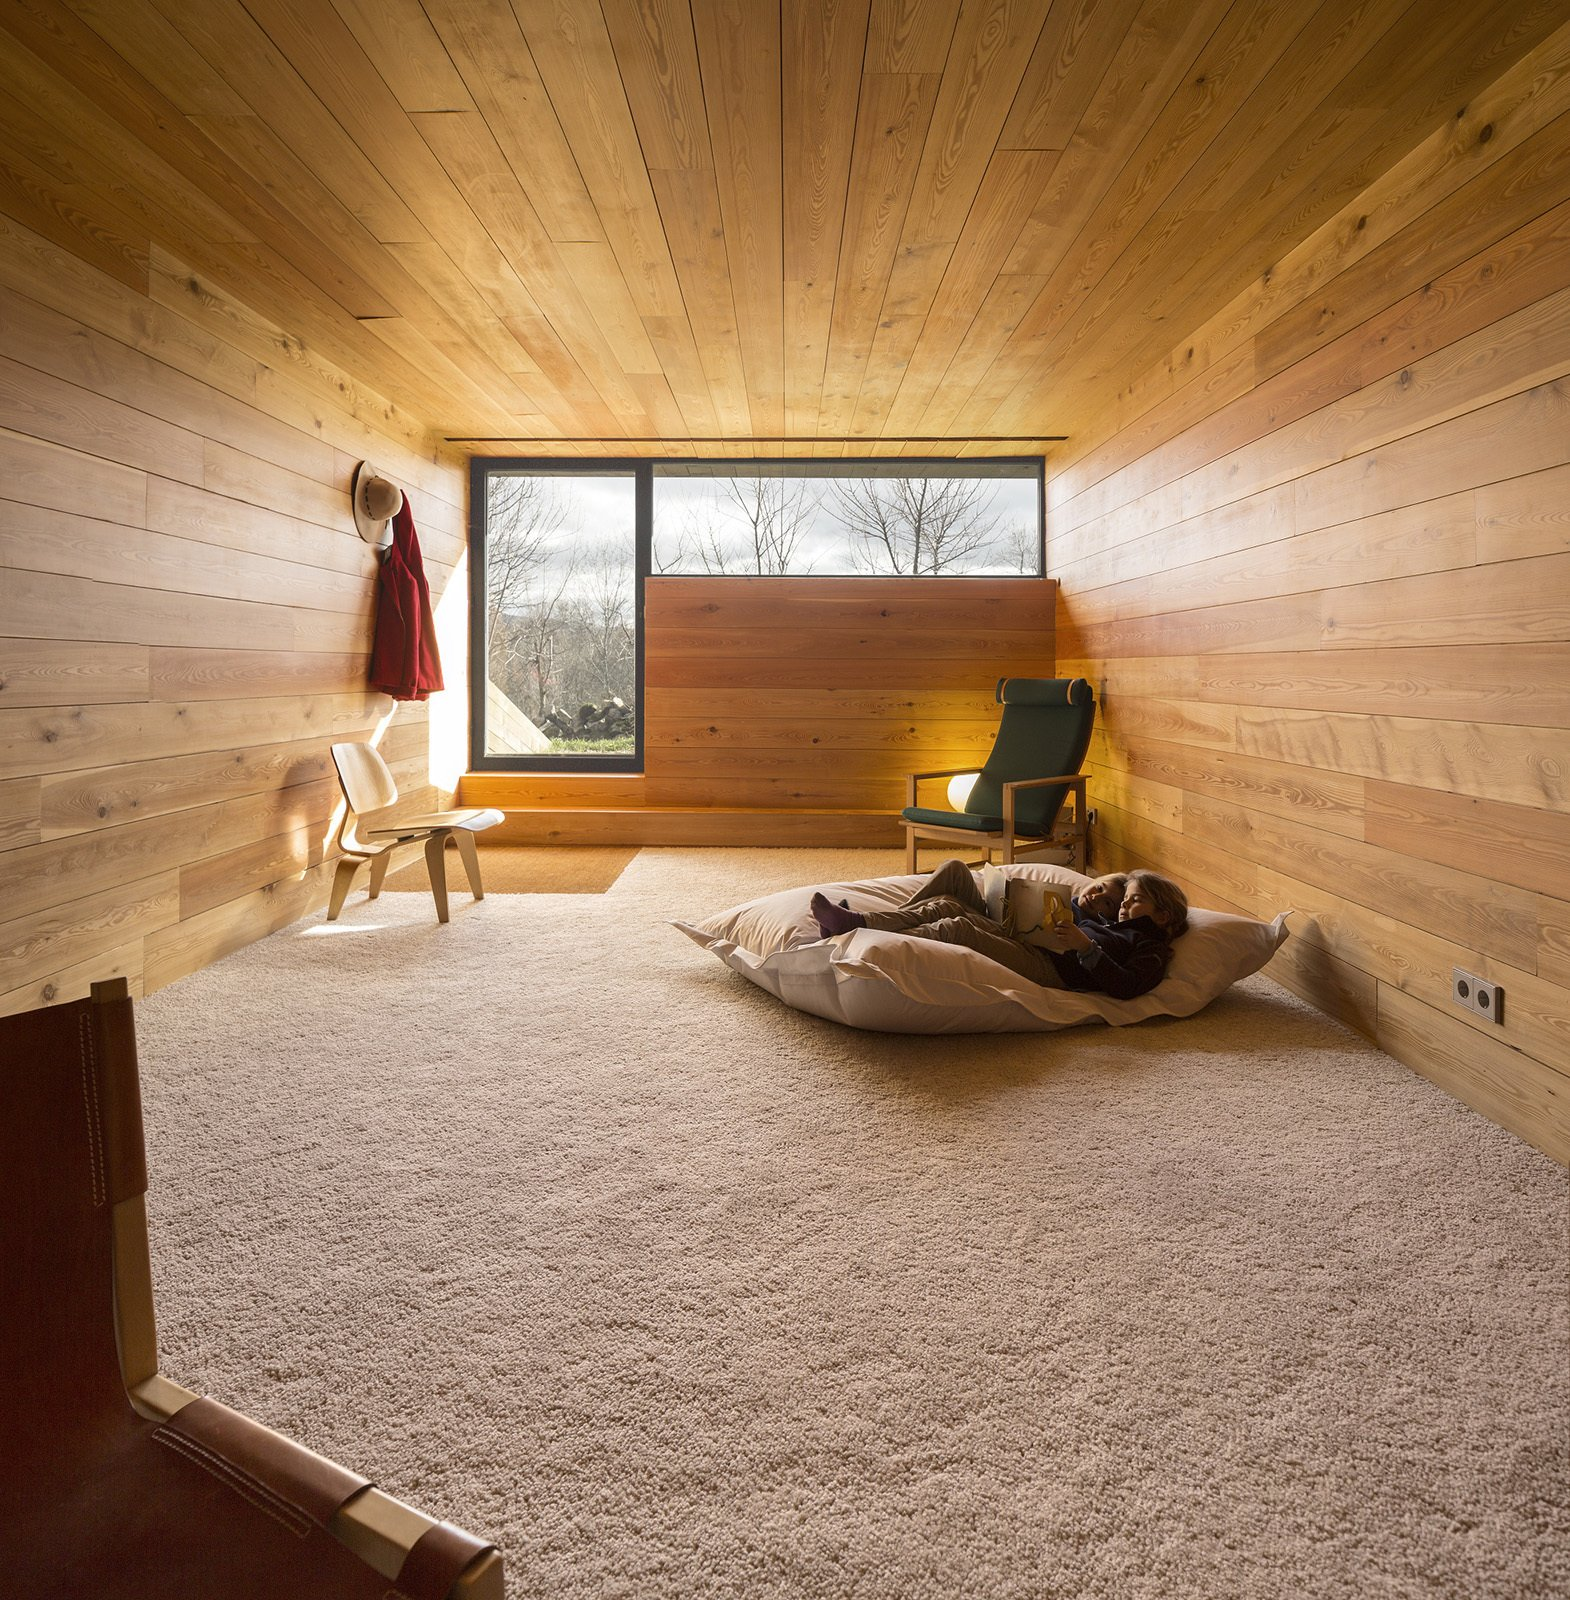 Kids Room and Bedroom Room Type Downstairs, bedrooms and a library offer private spaces. Wide-plank blond wood wraps the walls, floors, and ceilings, creating a cozy shiplike experience.  Refuge by Diana Budds from House of the Week: Timber Box Home in the Middle of the Spanish Countryside